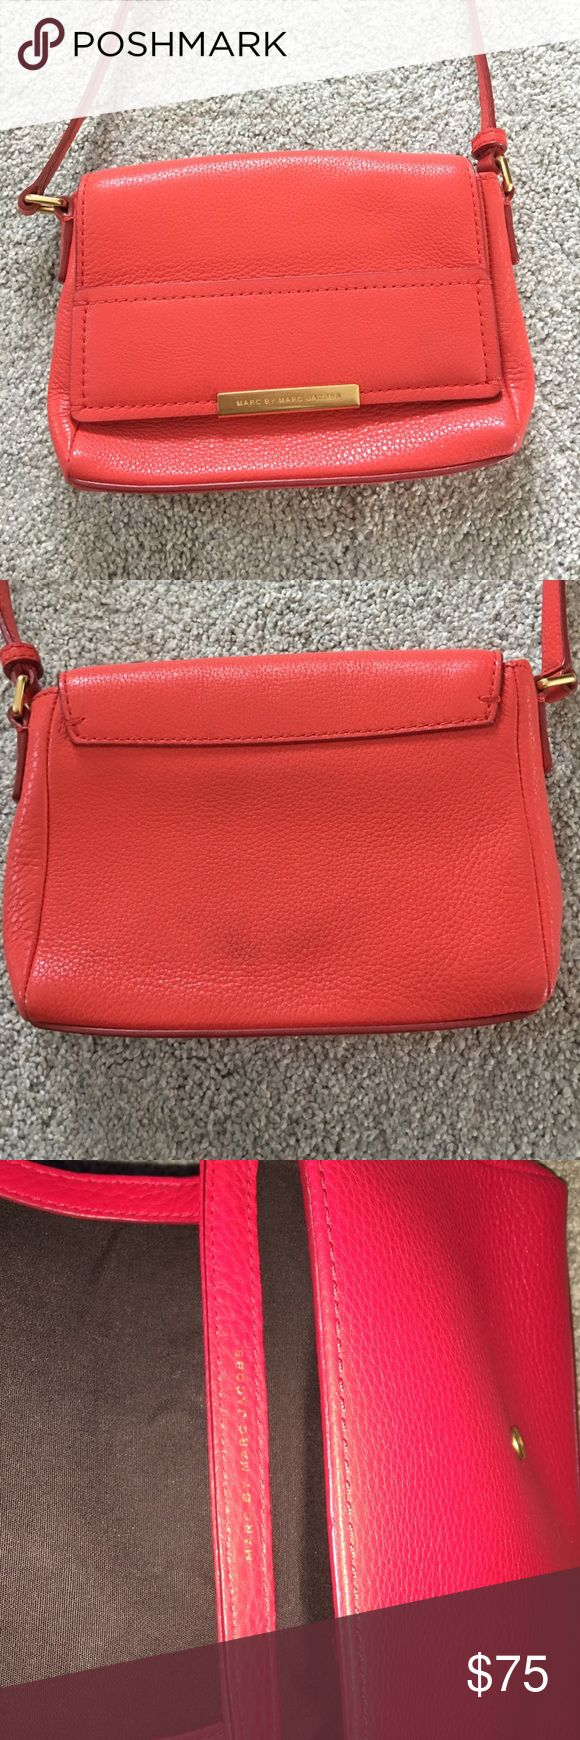 Marc by Marc Jacobs purse Red small purse Marc By Marc Jacobs Accessories